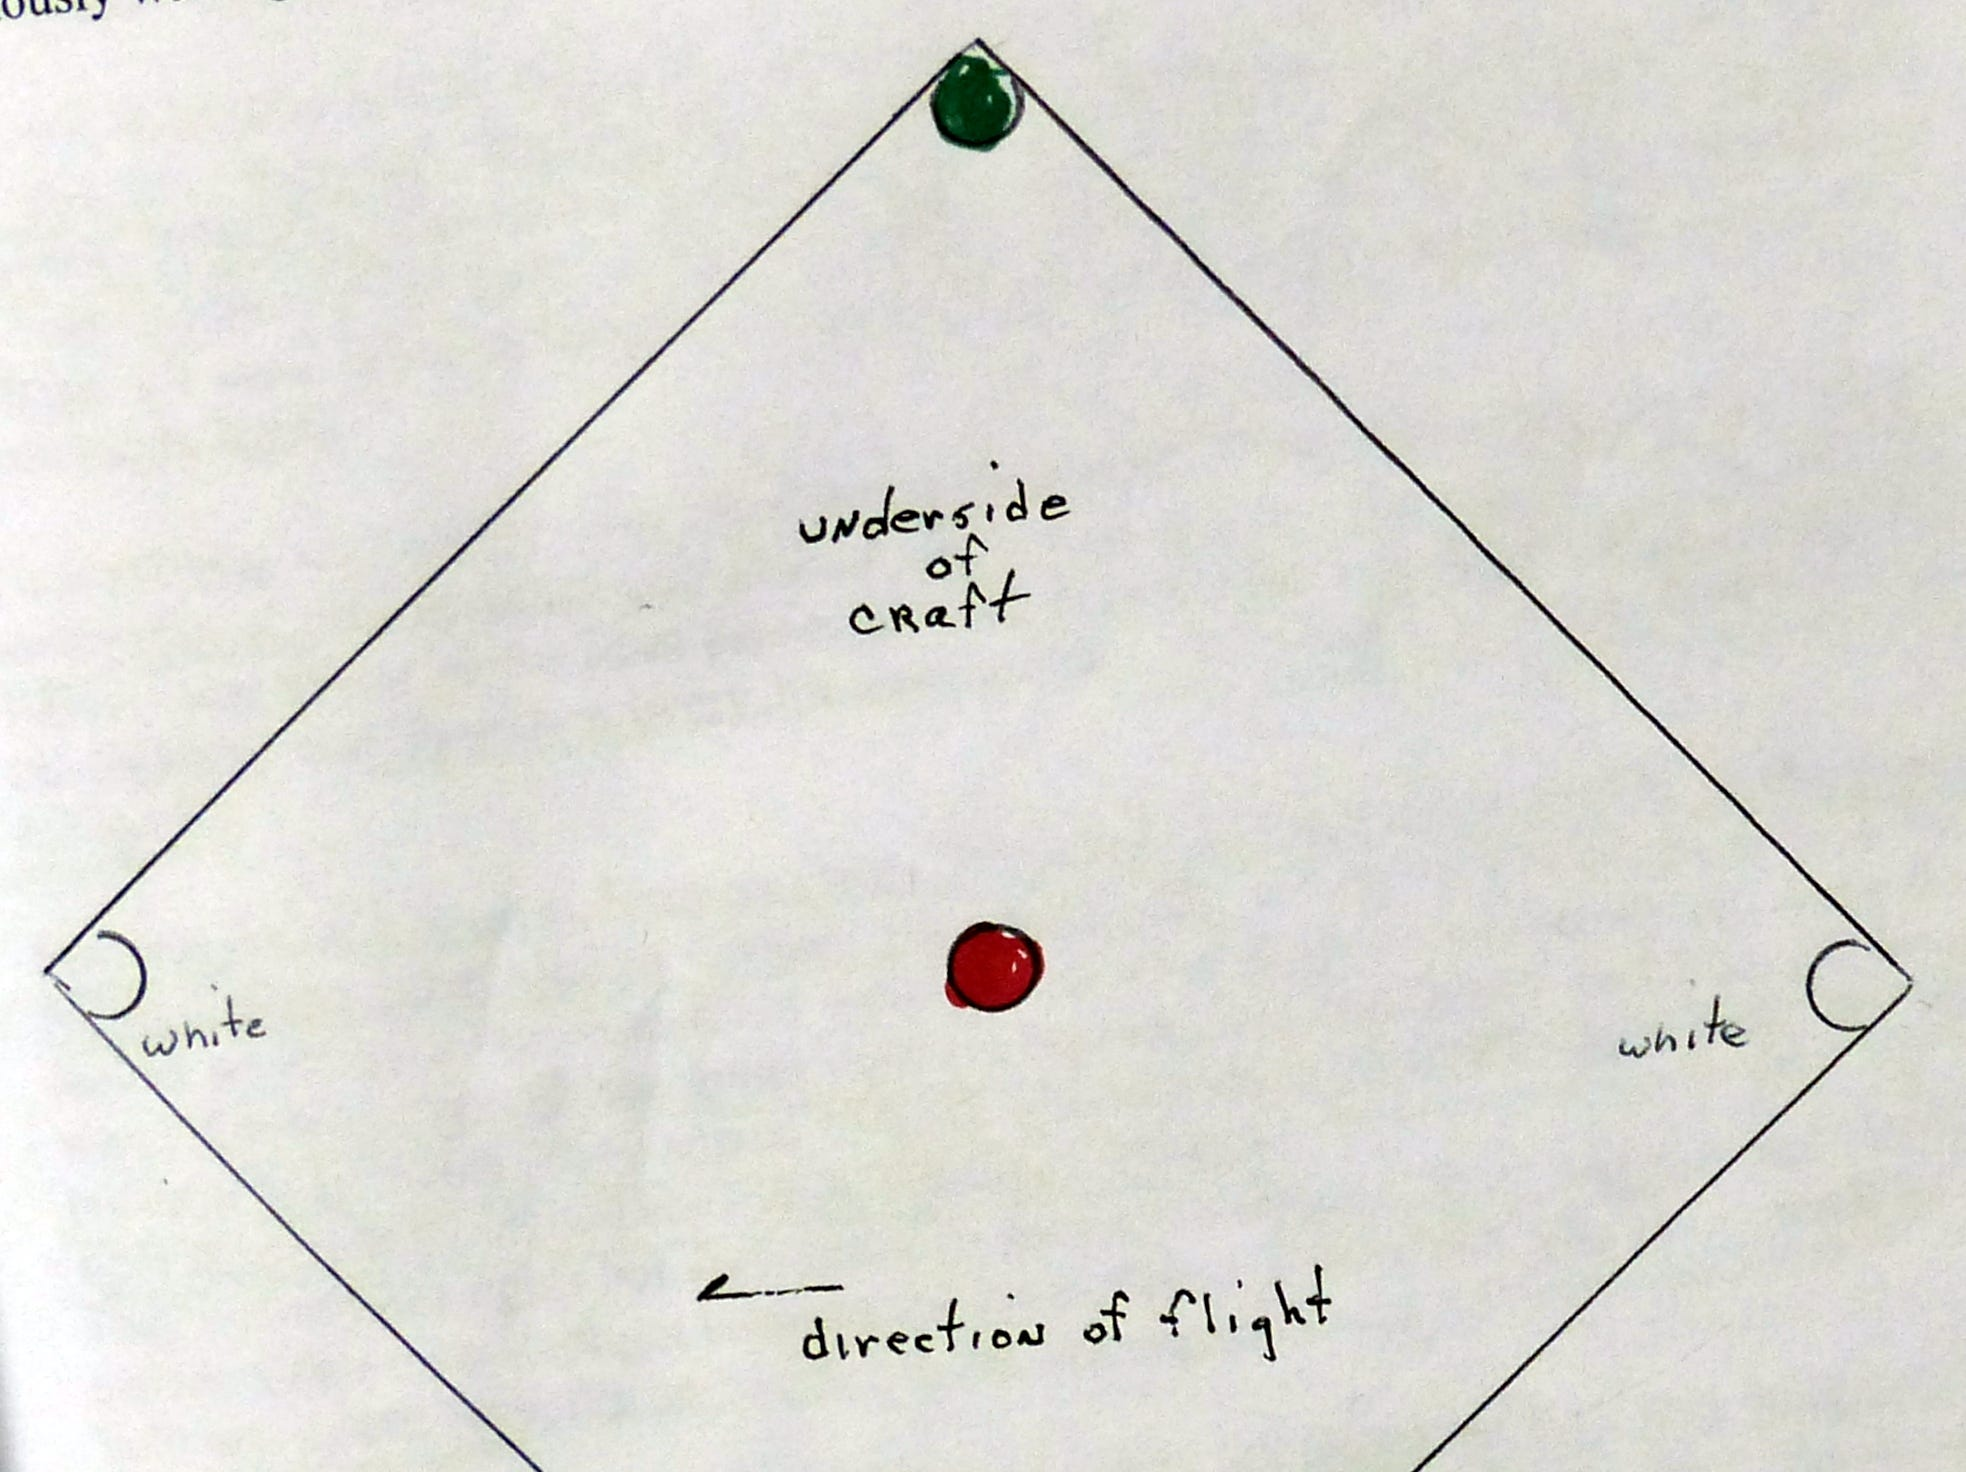 Bill Thorp sketched the positions of the lights on the underside of a craft that flew over his home in Nogal.